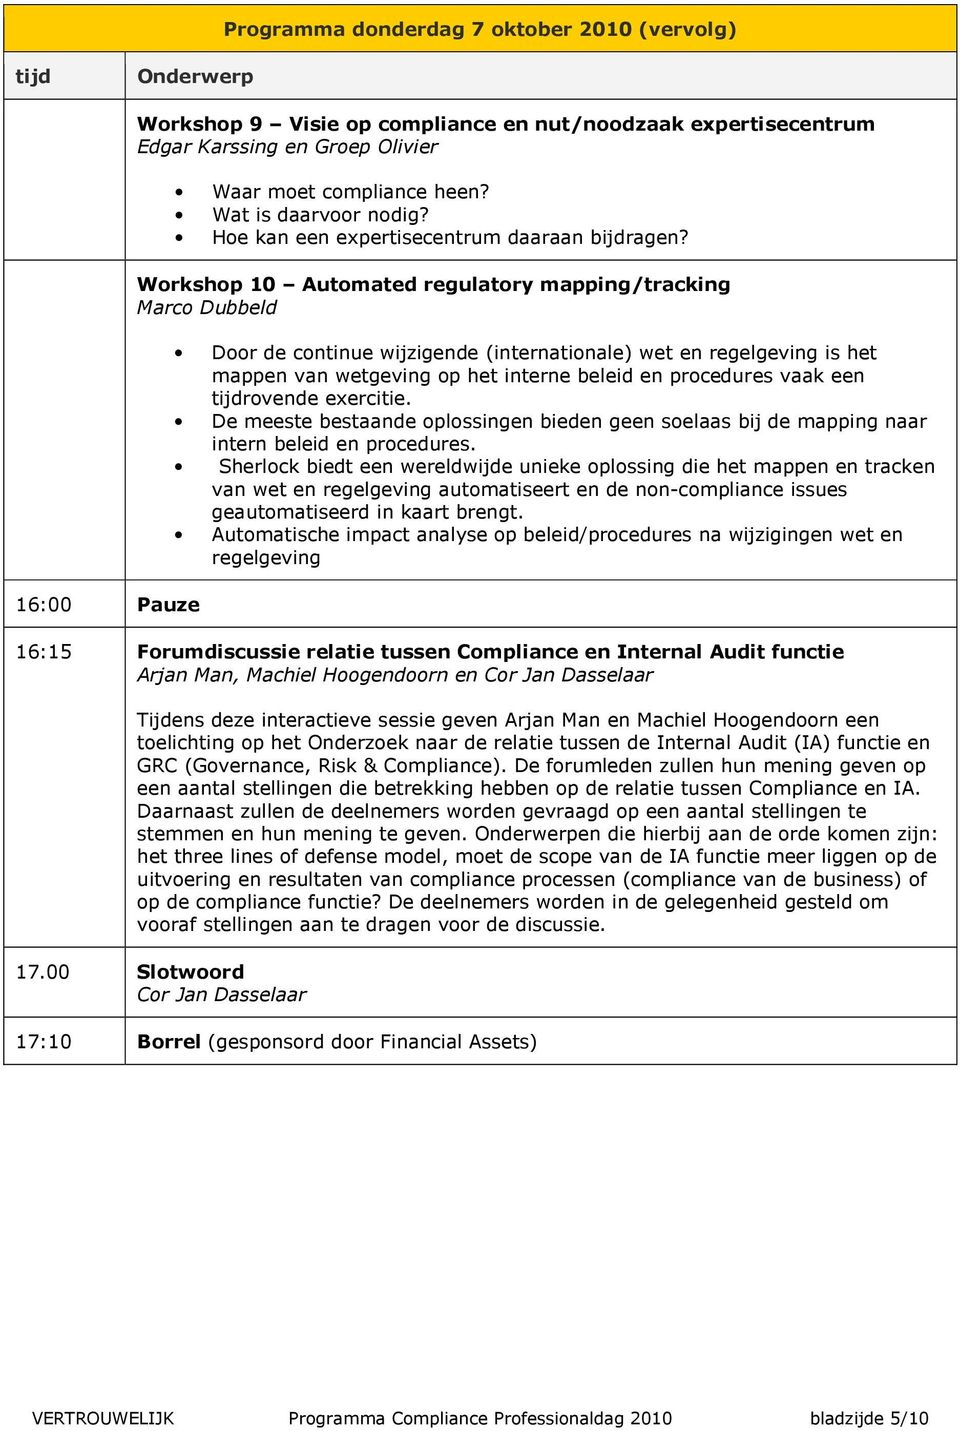 Workshop 10 Automated regulatory mapping/tracking Marco Dubbeld Door de continue wijzigende (internationale) wet en regelgeving is het mappen van wetgeving op het interne beleid en procedures vaak